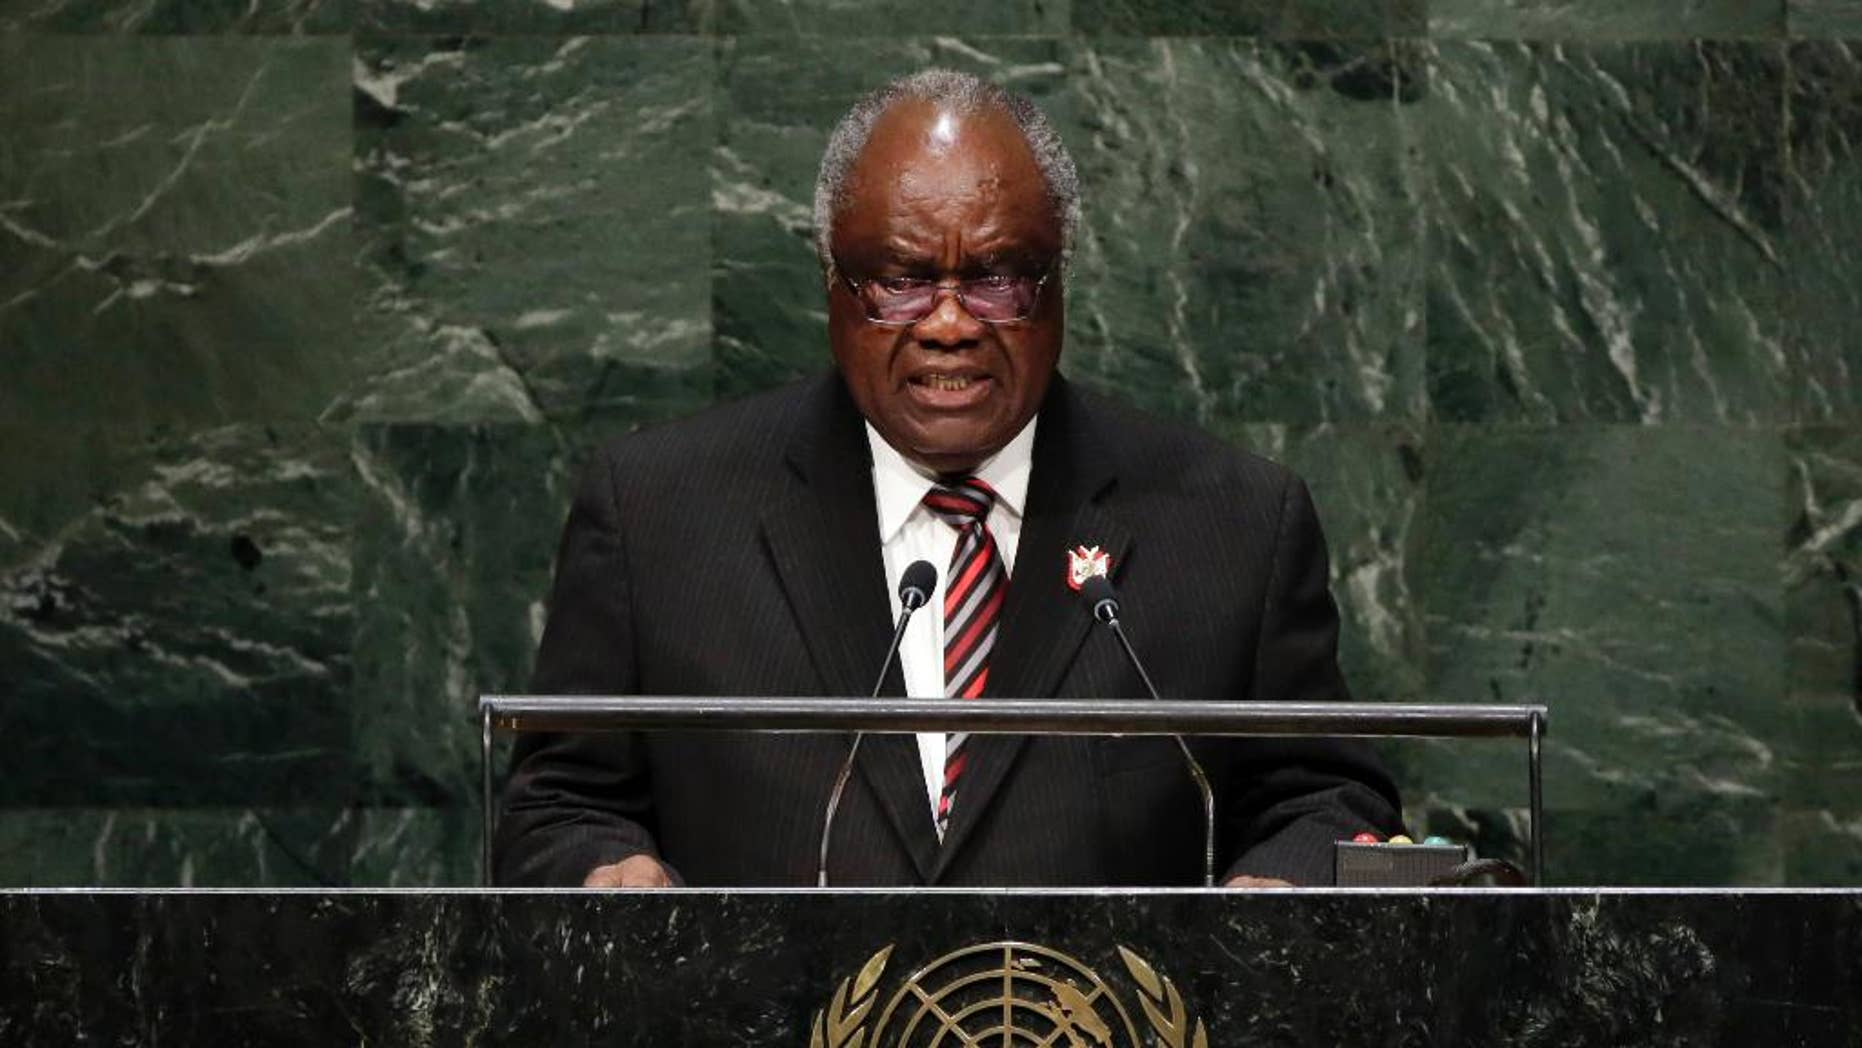 FILE - In this Friday, Sept. 26, 2014 file photo, Namibian President Hifikepunye Pohamba addresses the 69th session of the United Nations General Assembly at U.N. headquarters. Pohamba has won the 2014 Ibrahim Prize for African leadership, the first African leader deemed worthy of the honor since 2011. Chairman of the prize committee Salim Ahmed Salim announced that Pohamba won the $5 million prize Monday, March 2, 2015 in Nairobi. (AP Photo/Richard Drew, File)